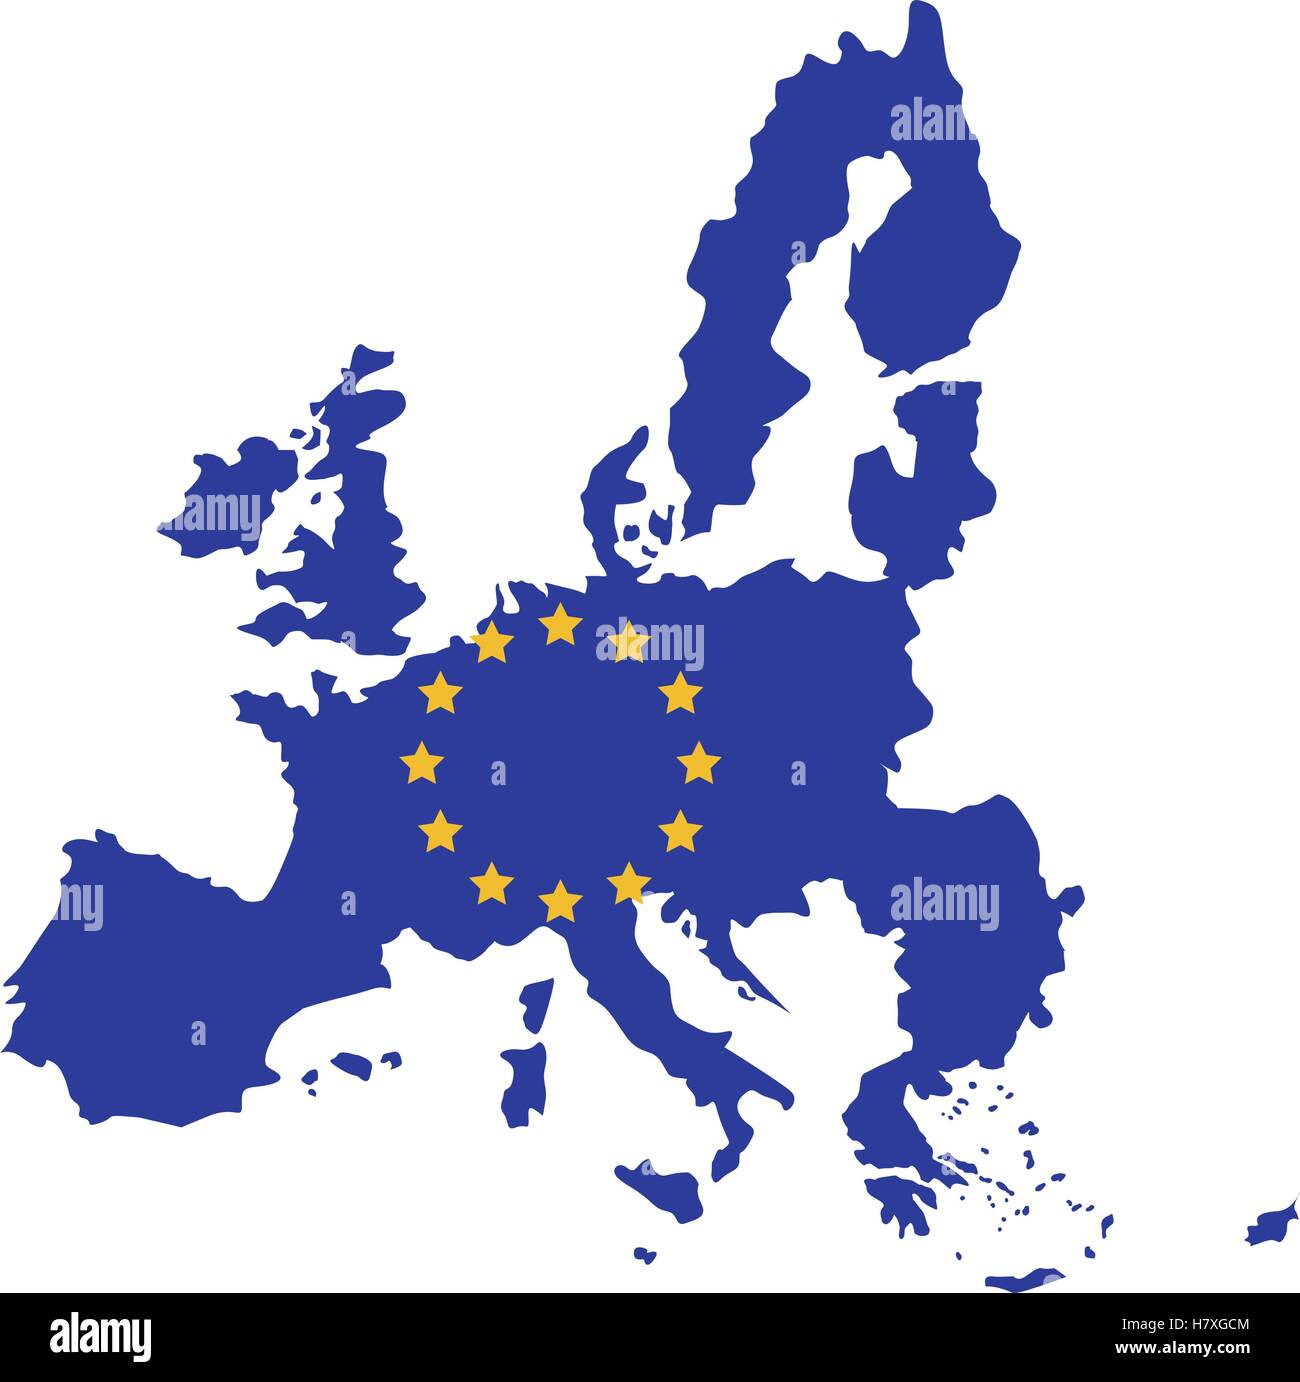 European union map icon. Europe eu country national and politics theme. Isolated design. Vector illustration - Stock Image